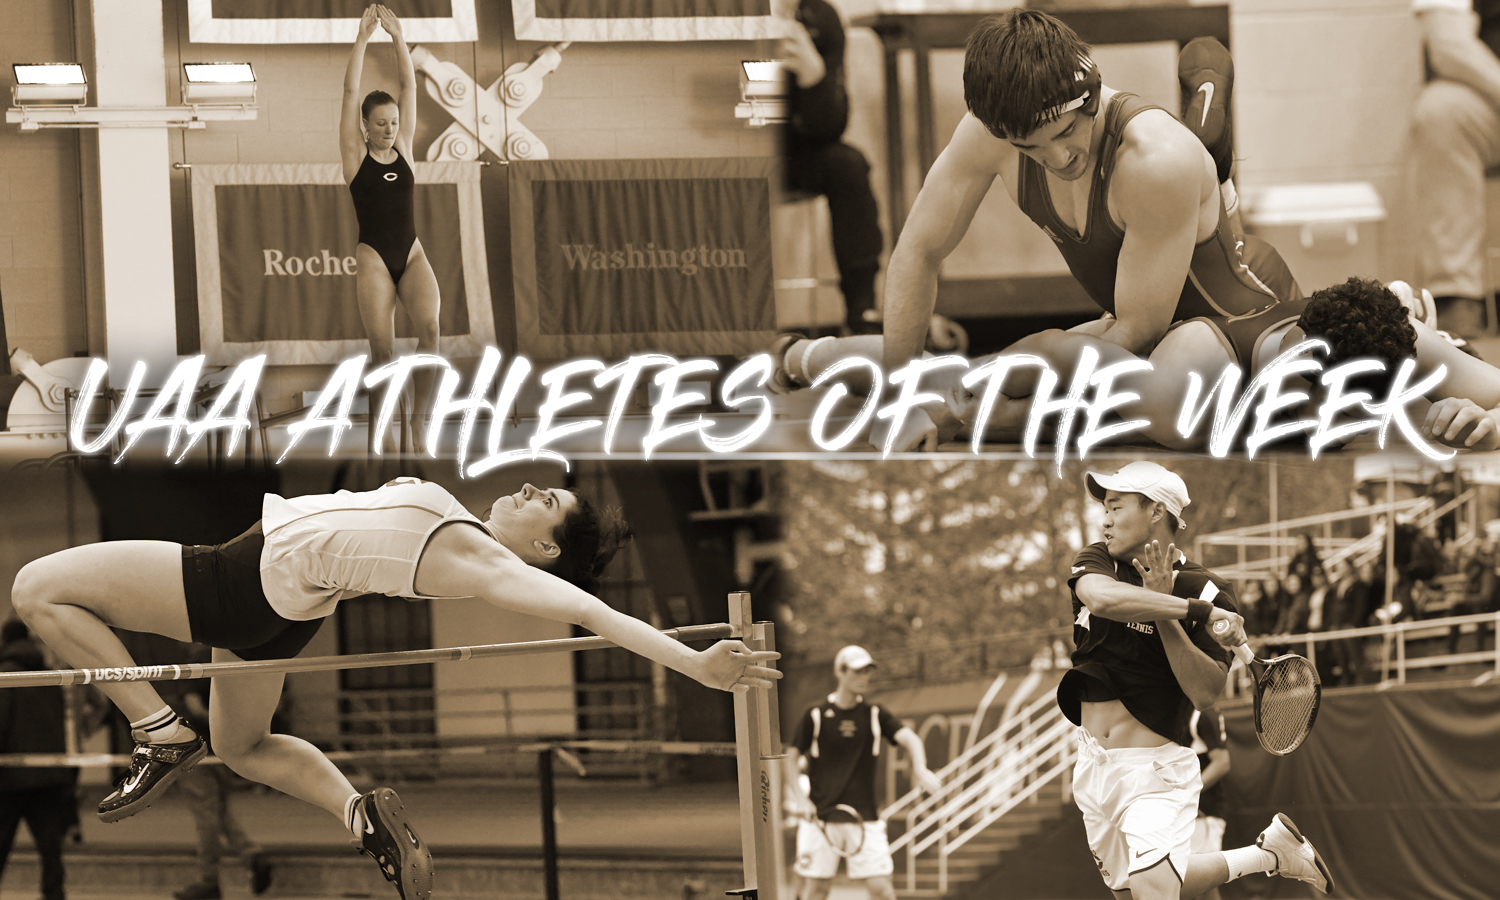 Maroon Quartet Represented on UAA Athletes of the Week List